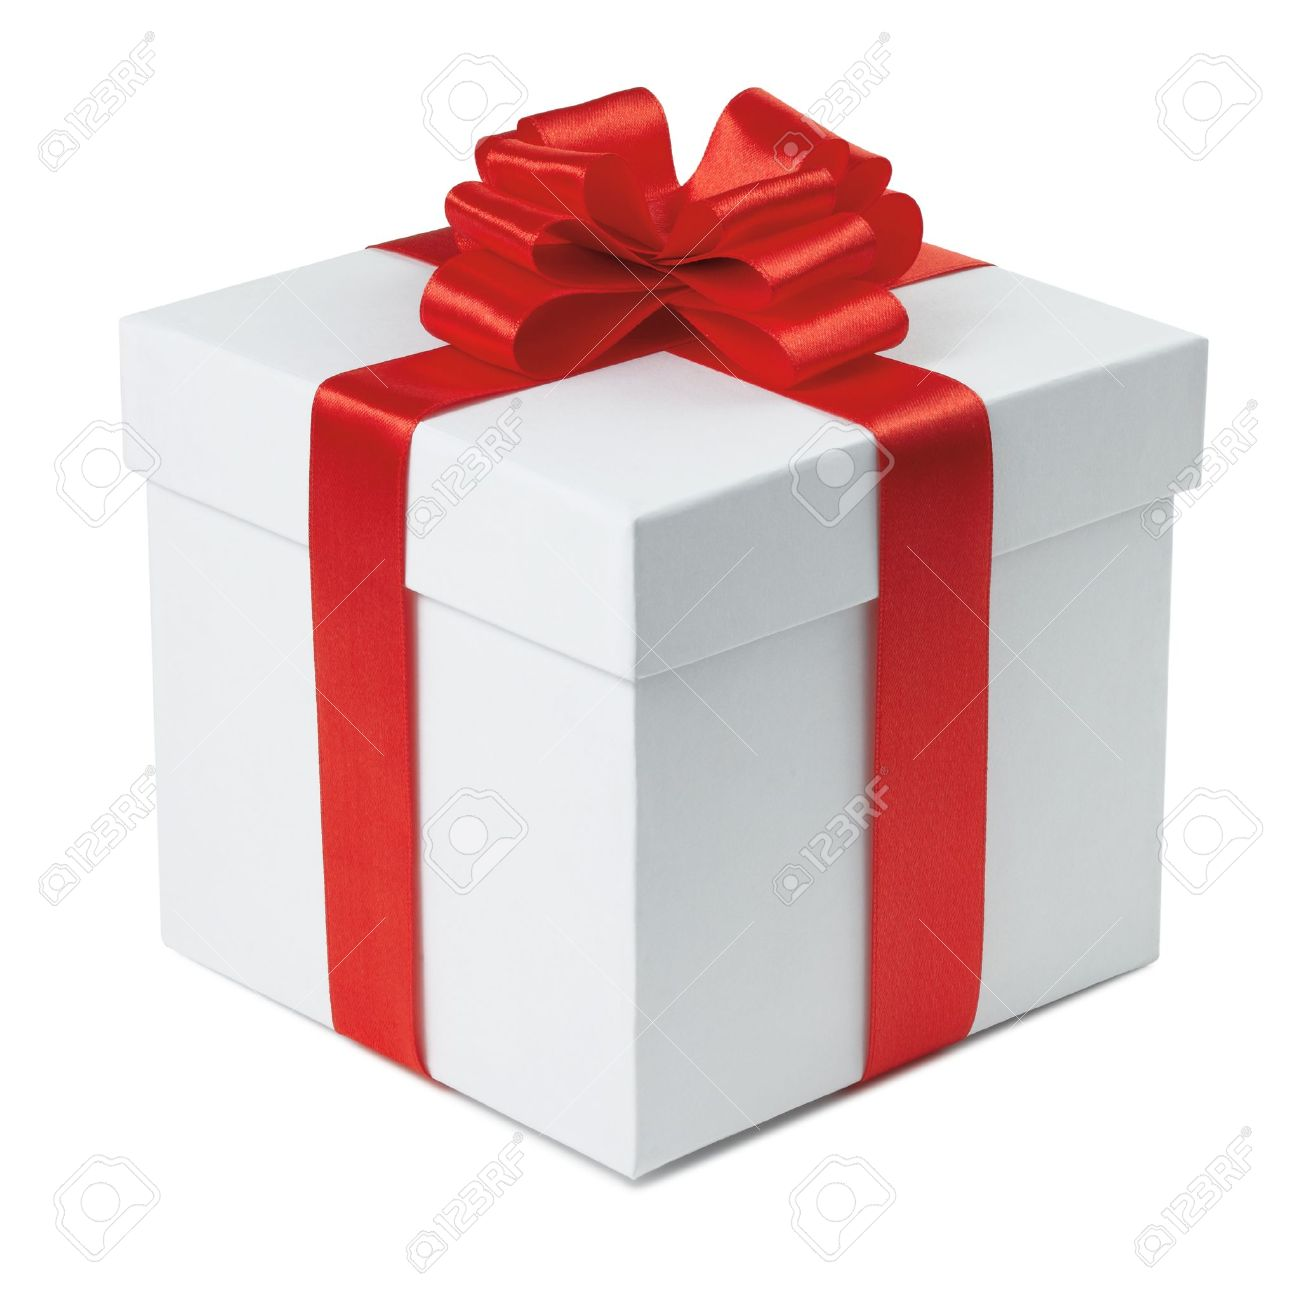 Red gift bows border with clipping path for easy background removing - Red Box Gift Box With Ribbon End Bow On The White Background